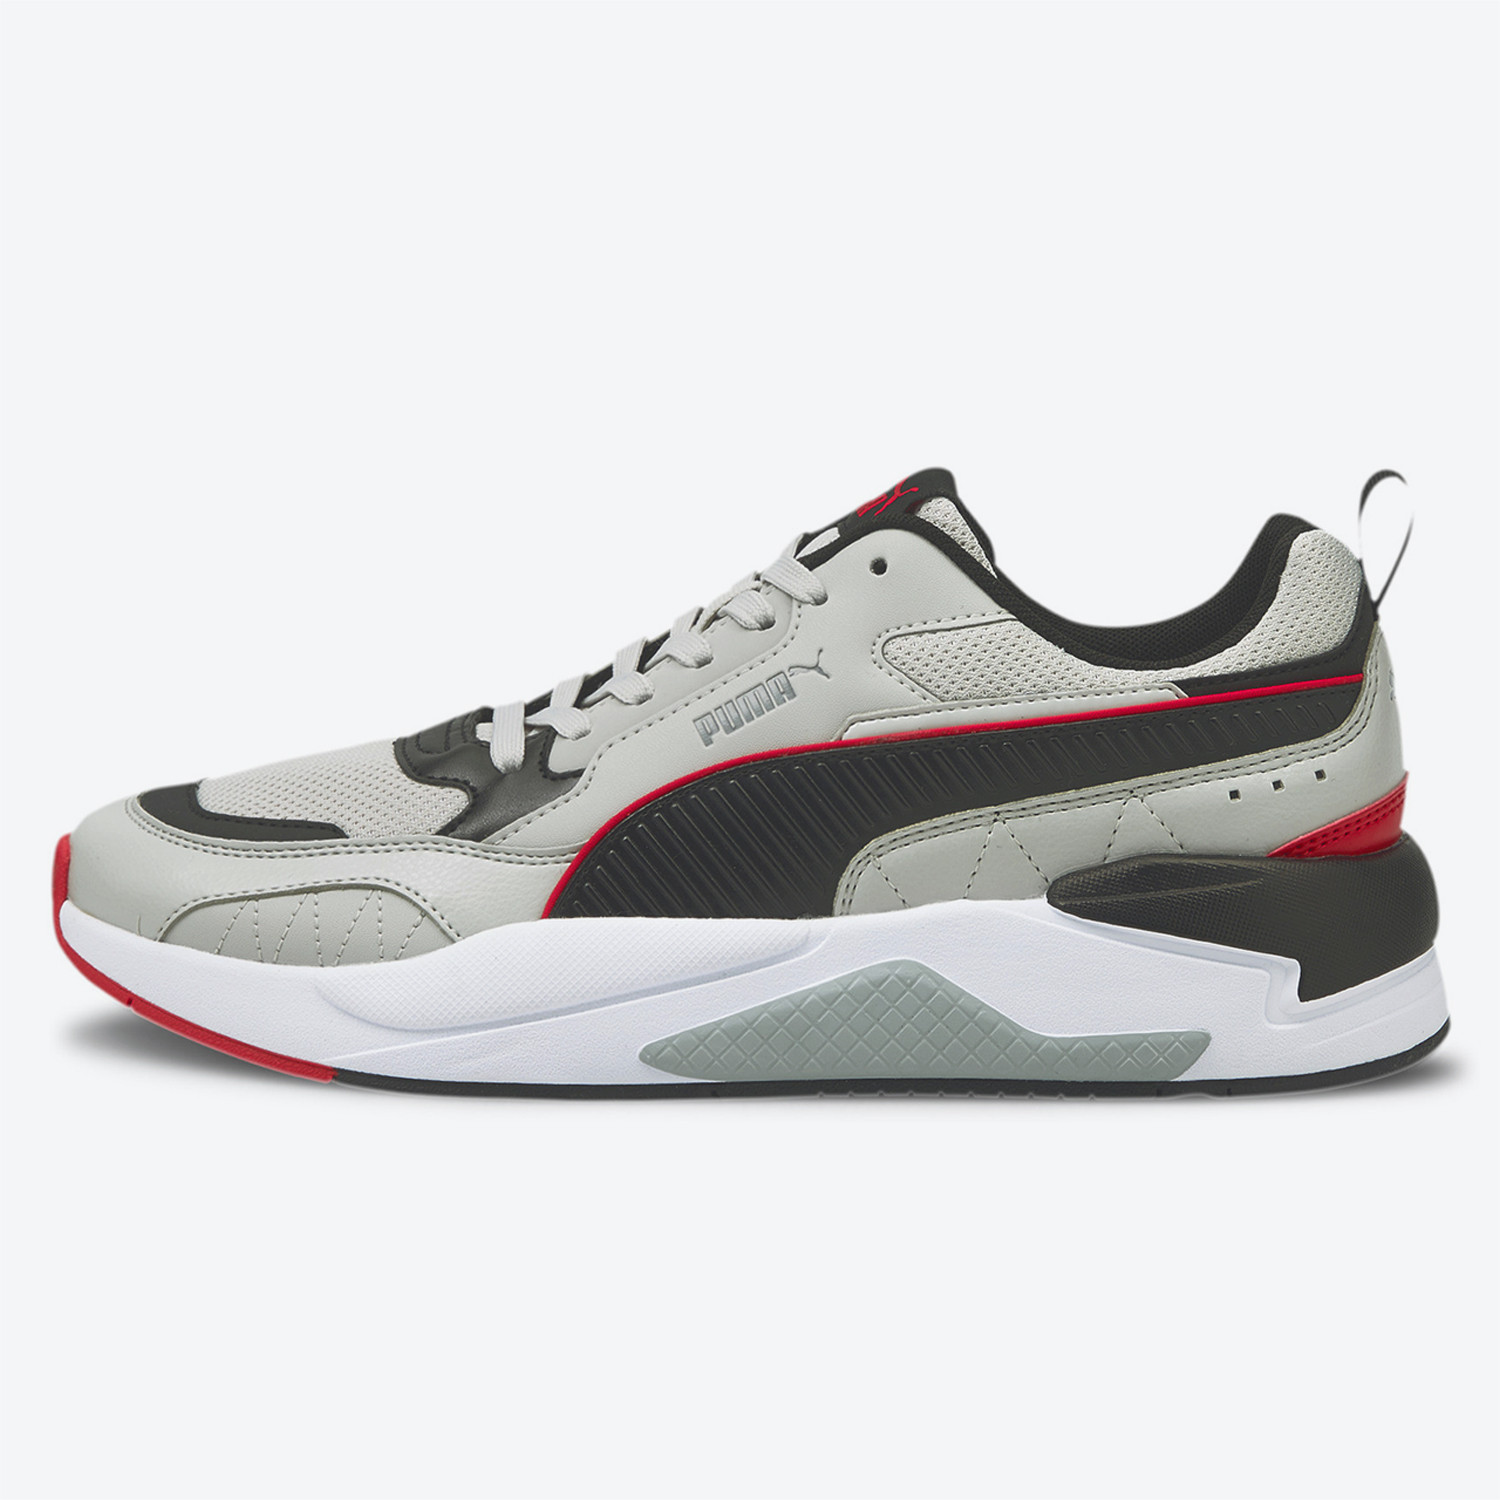 Puma X-Ray 2 Square Footwear (9000072493_51330)